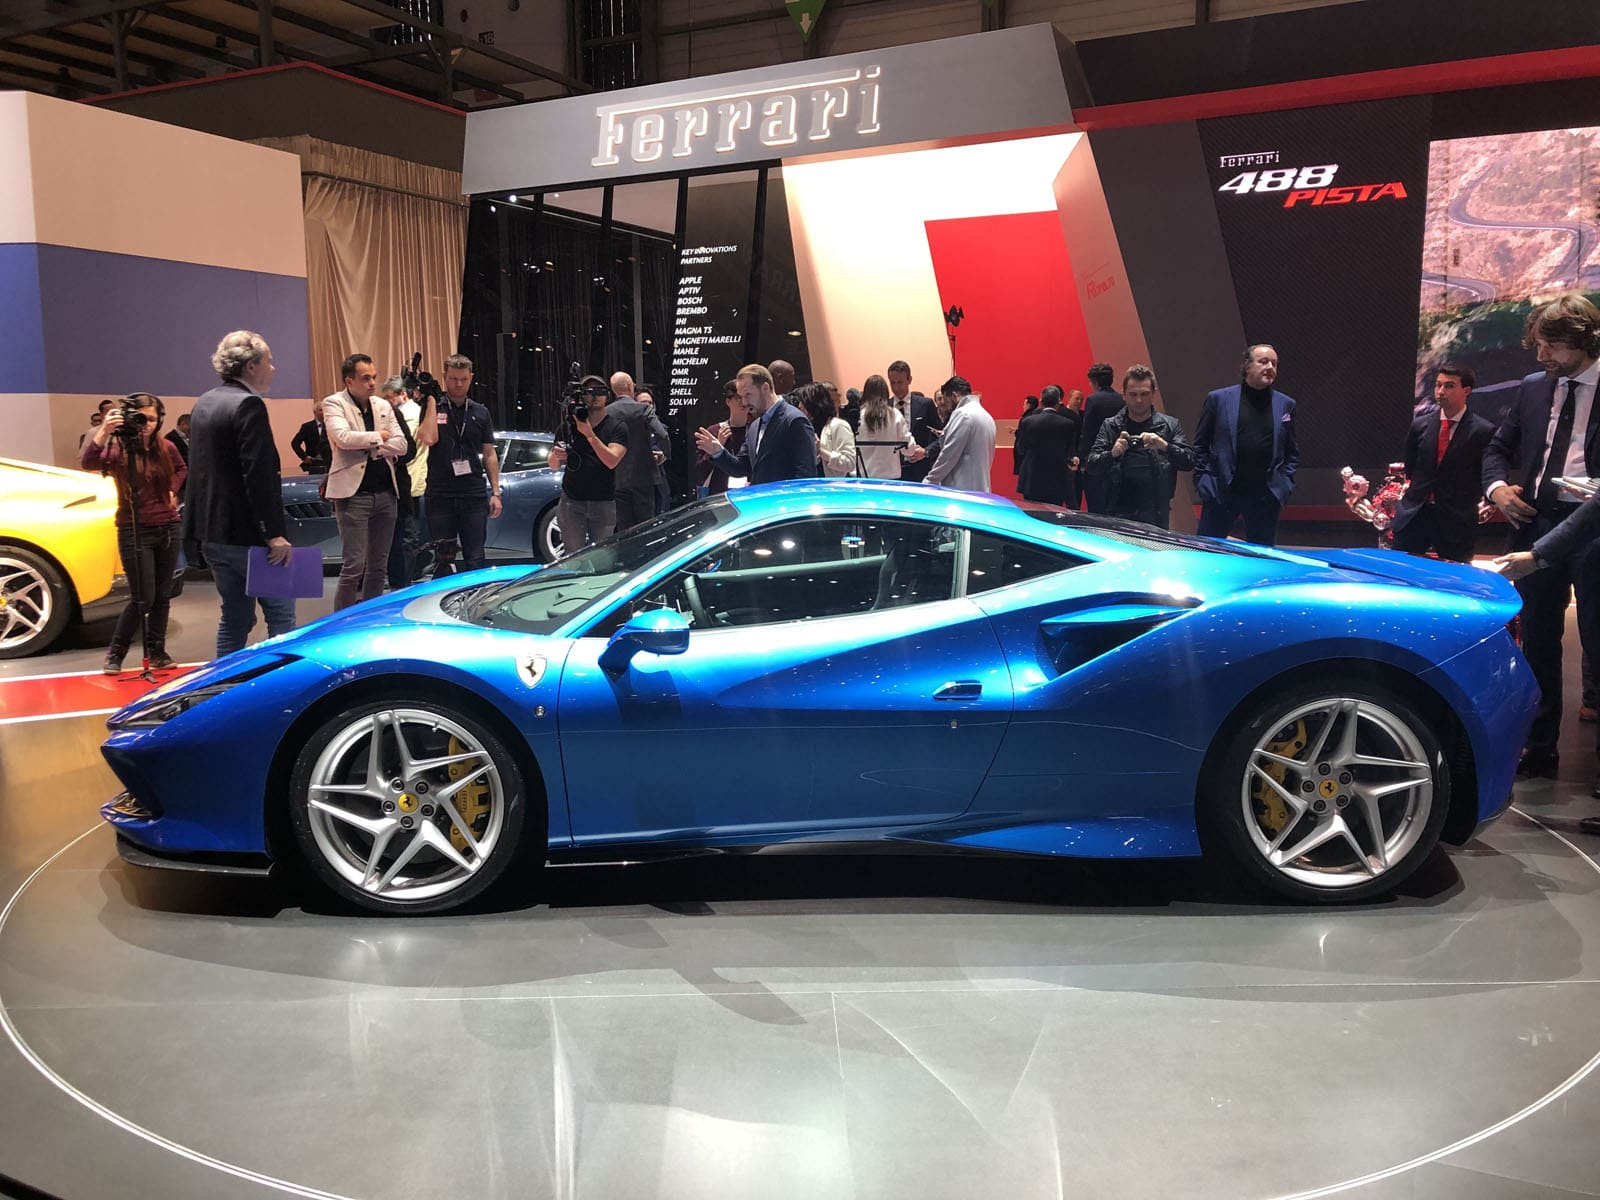 Ferrari F8 Tributo Looks Great In Blue Too At The Geneva Auto Show Motor Illustrated